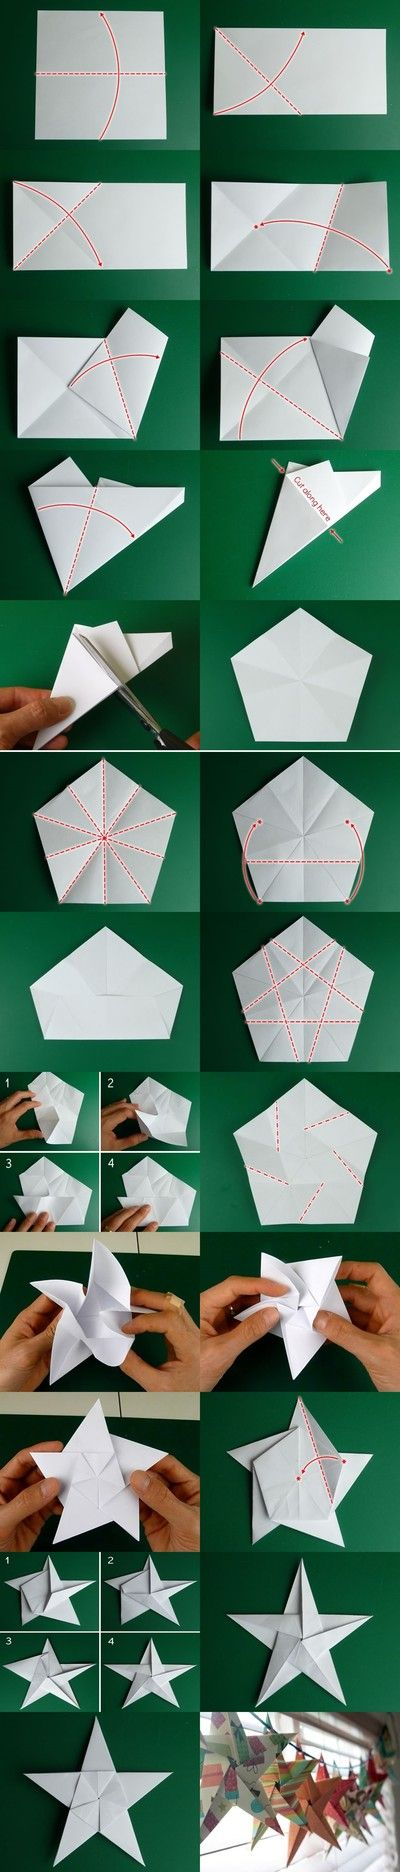 How to make a paper star                                                                                                                                                                                 More